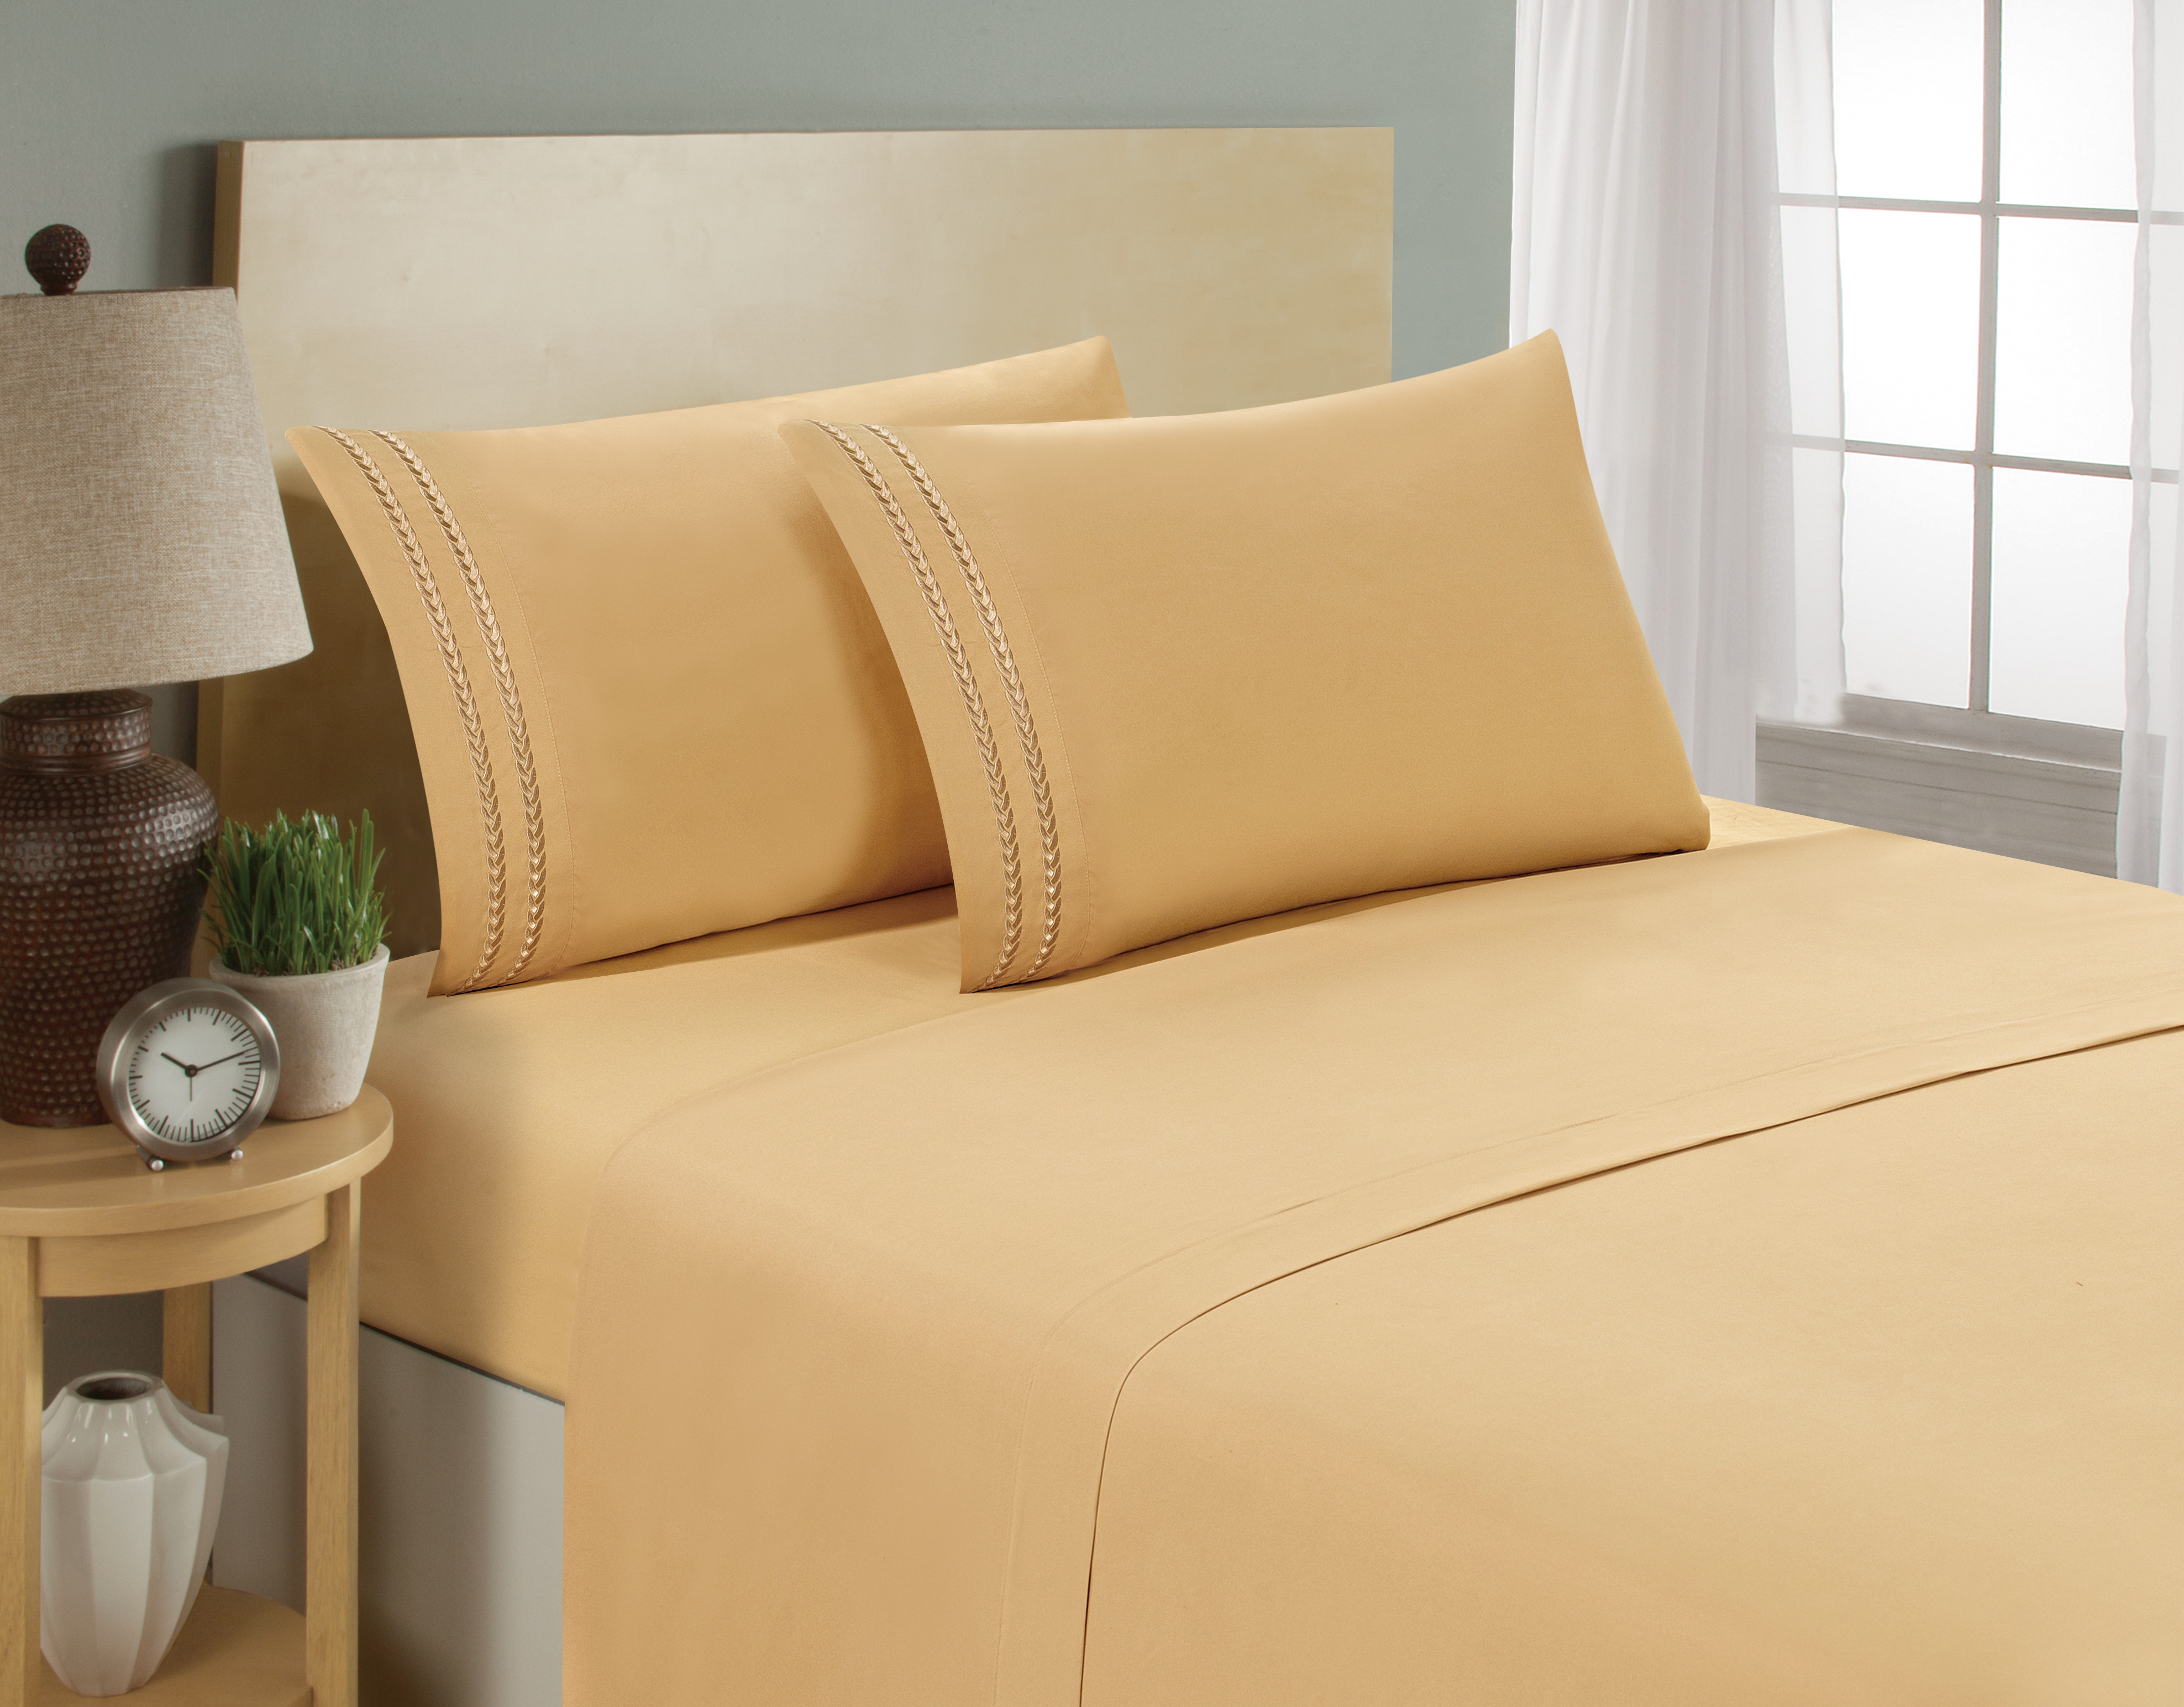 aJOY World Chain Link Embroidery 1800 Series Ultra-soft Premium Microfiber Sheet Set - Full, Camel